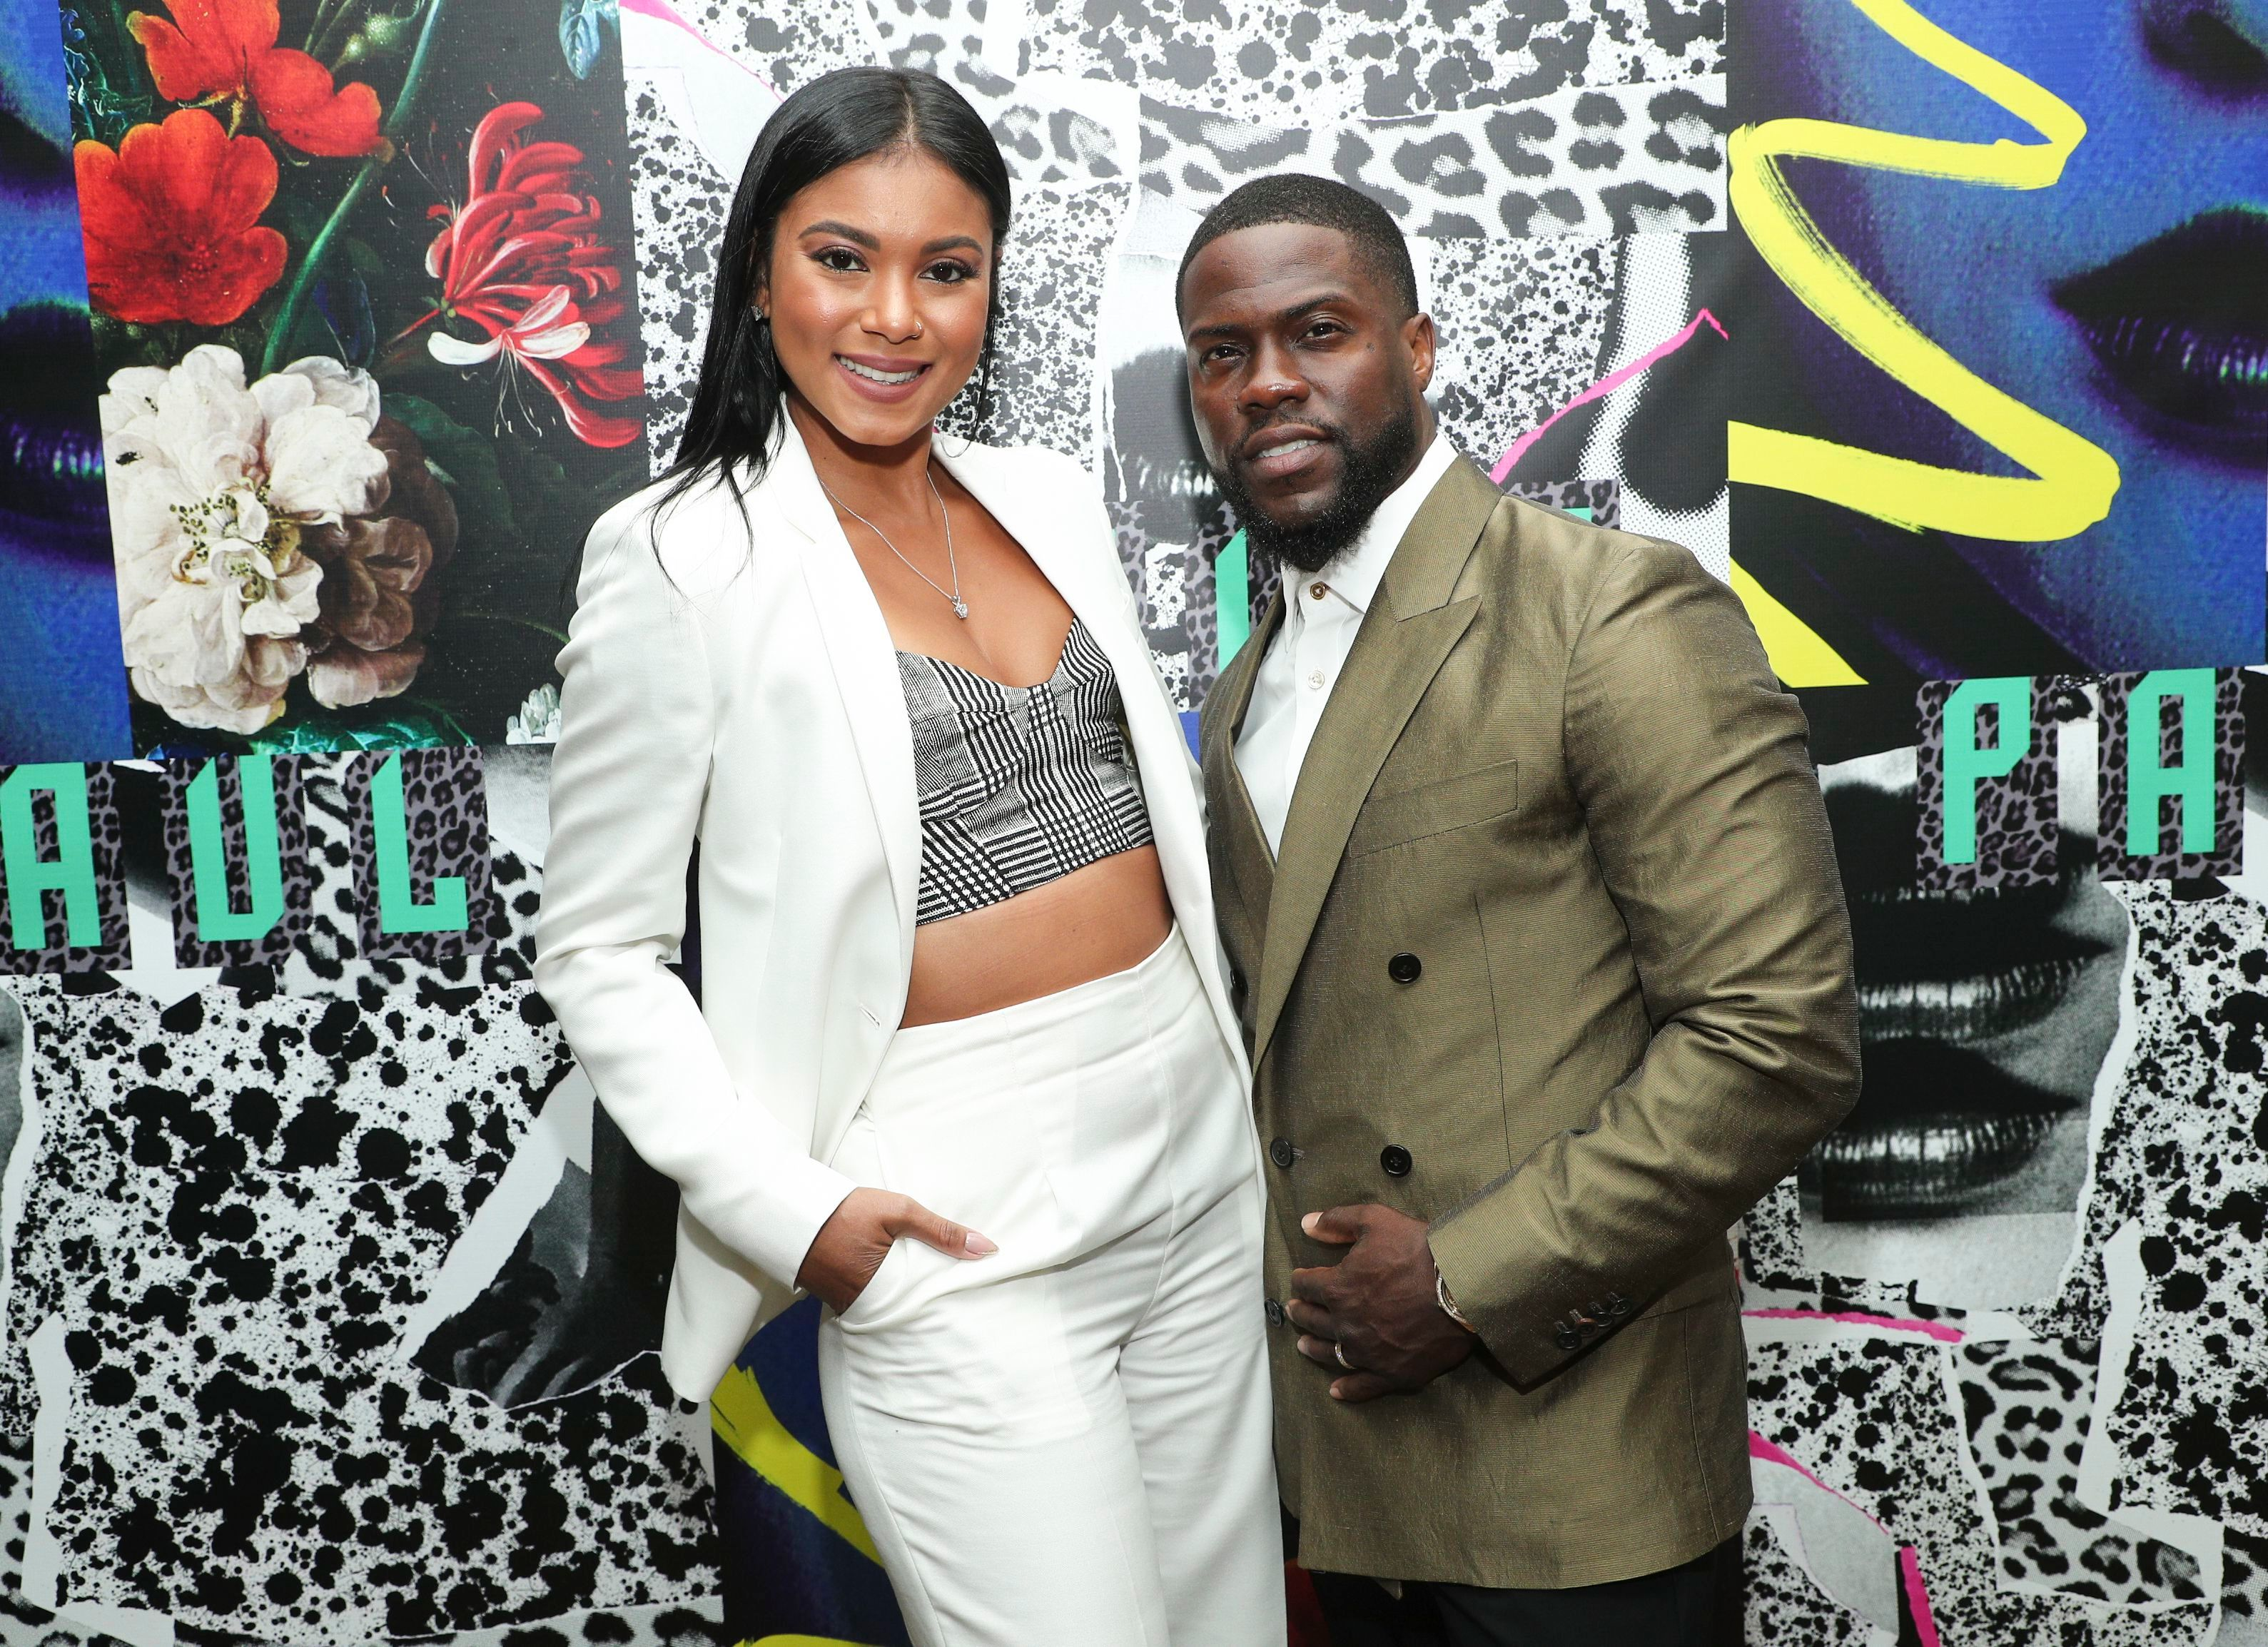 Eniko Parrish and Kevin HartPaul Smith honors John Legend, Cocktails, Chateau Marmont, Los Angeles, USA - 14 May 2019